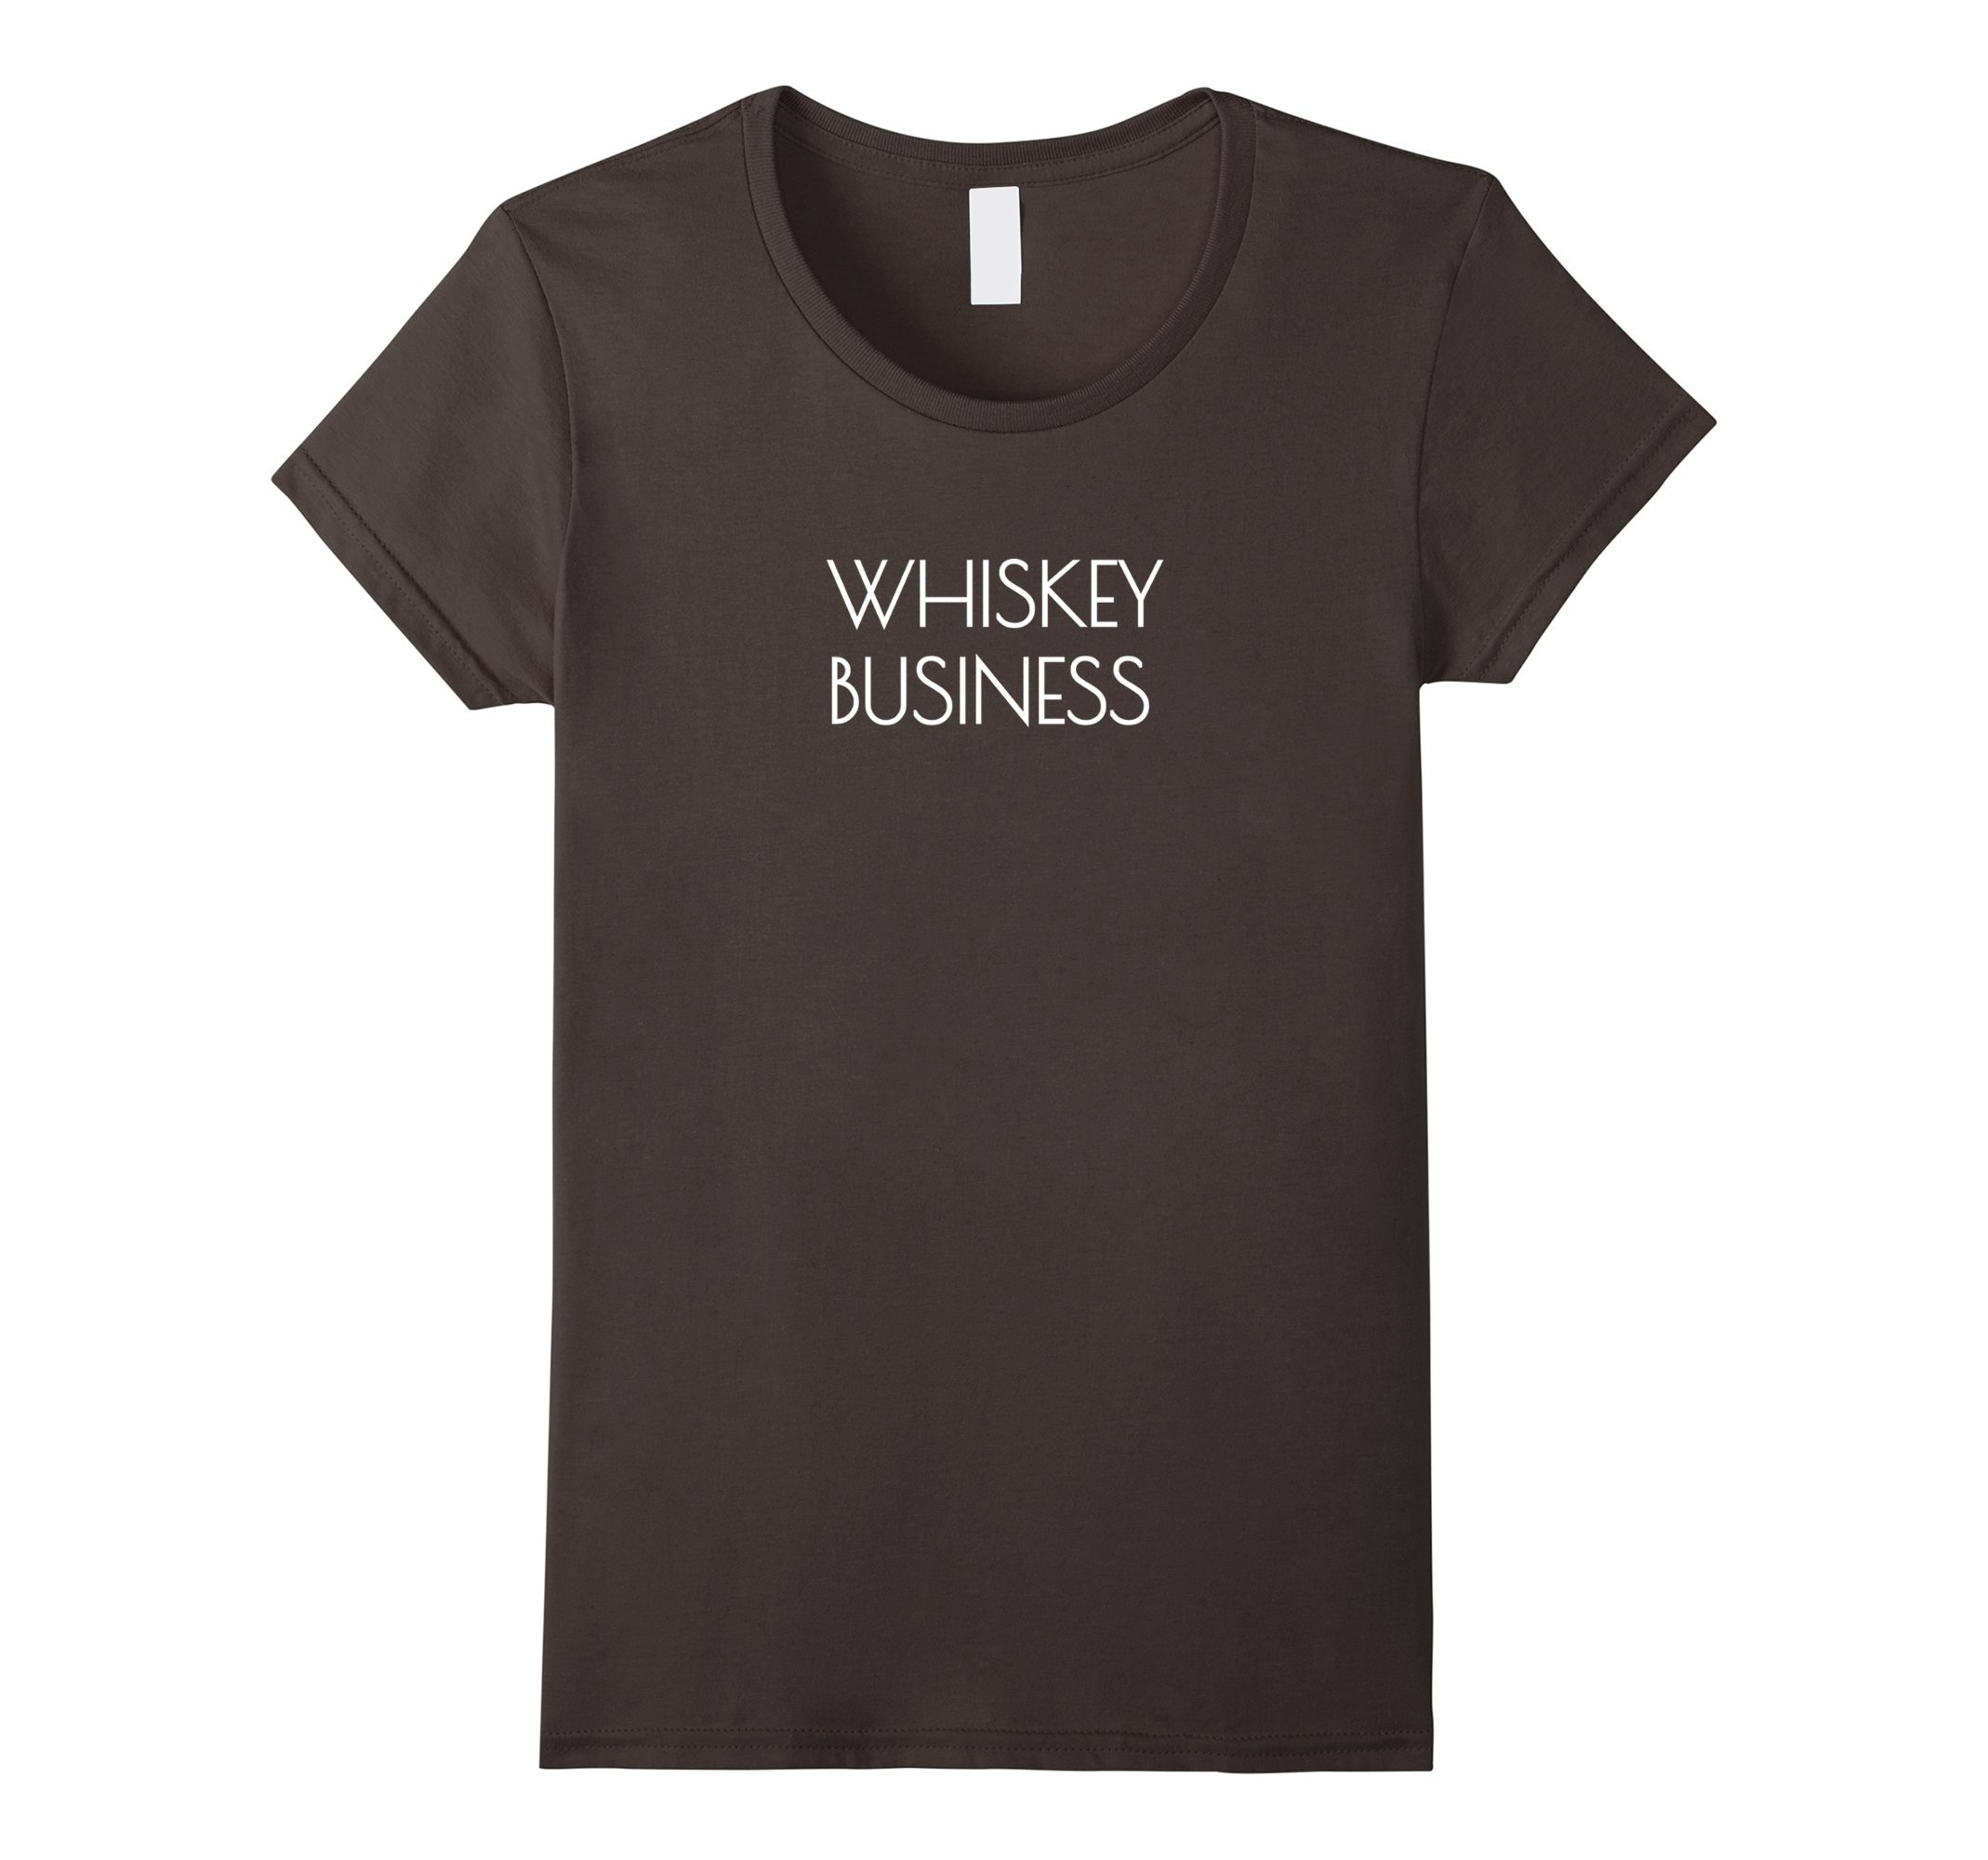 Womens Whiskey Business Funny Drinking And Going Out T-Shirt Medium Asphalt by Funny Drinking Whiskey Quotes T-Shirts